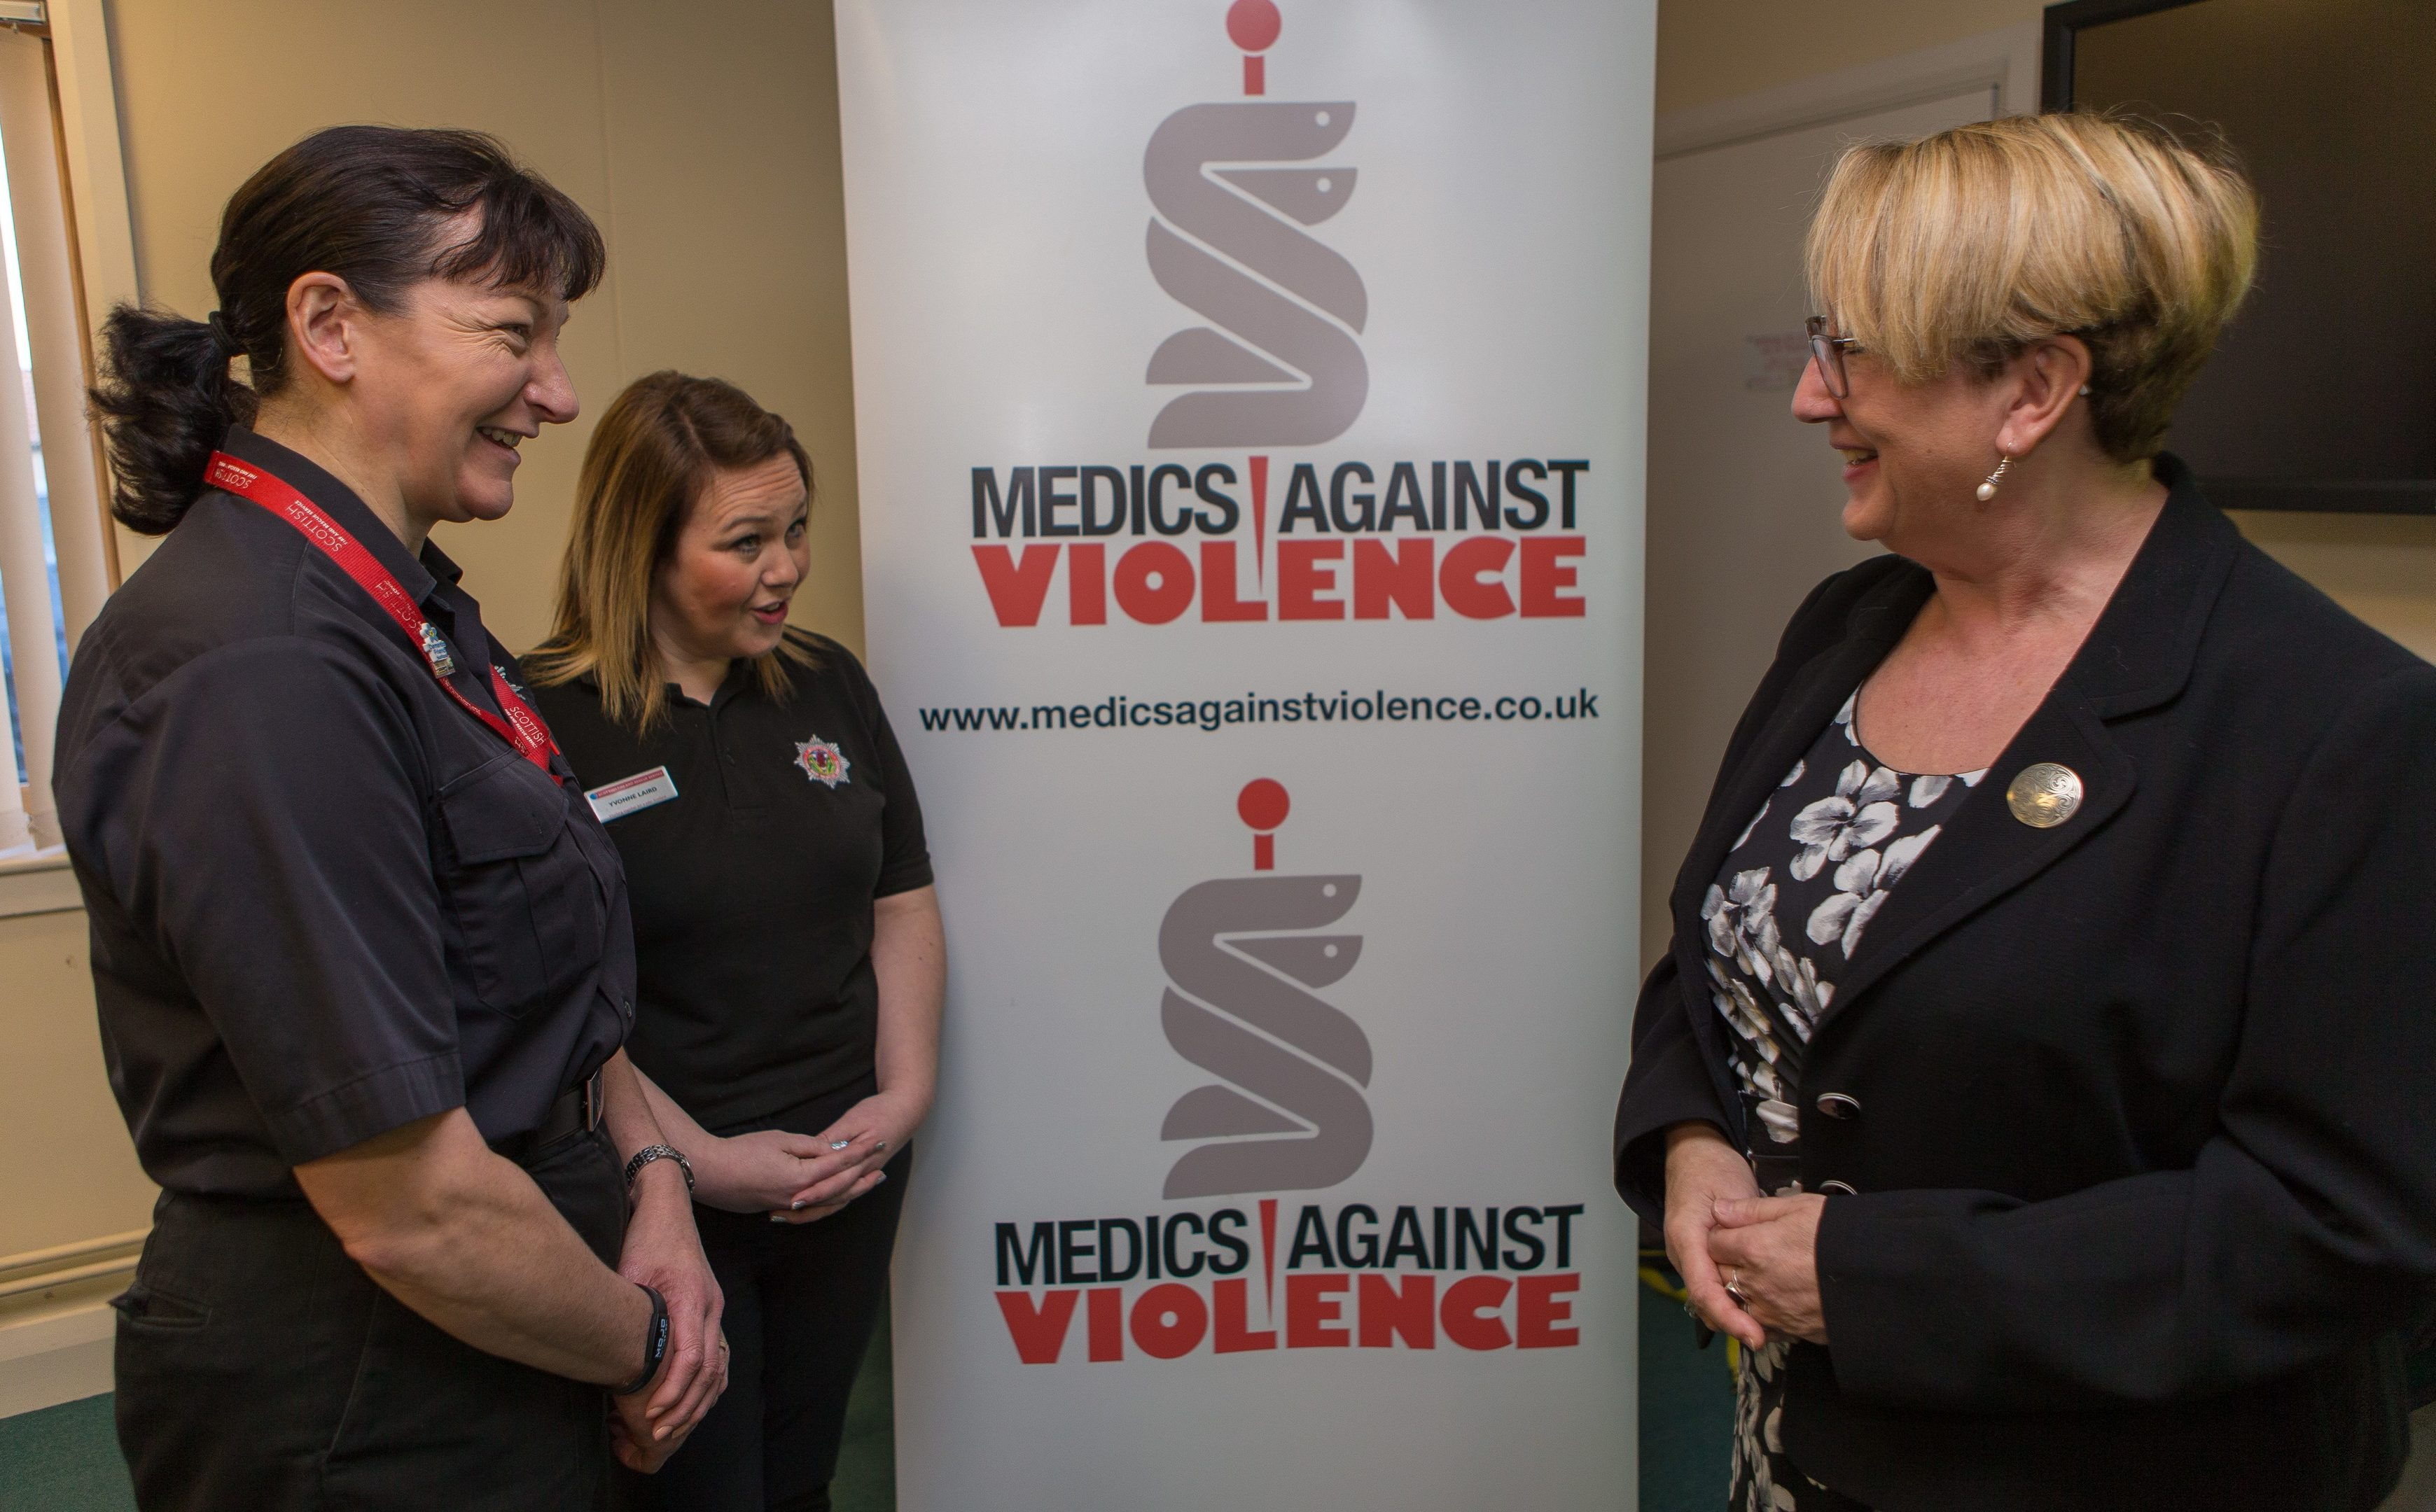 Yvonne Laird and Heather Steele of Fire Scotland speak to MSP Annabelle Ewing.